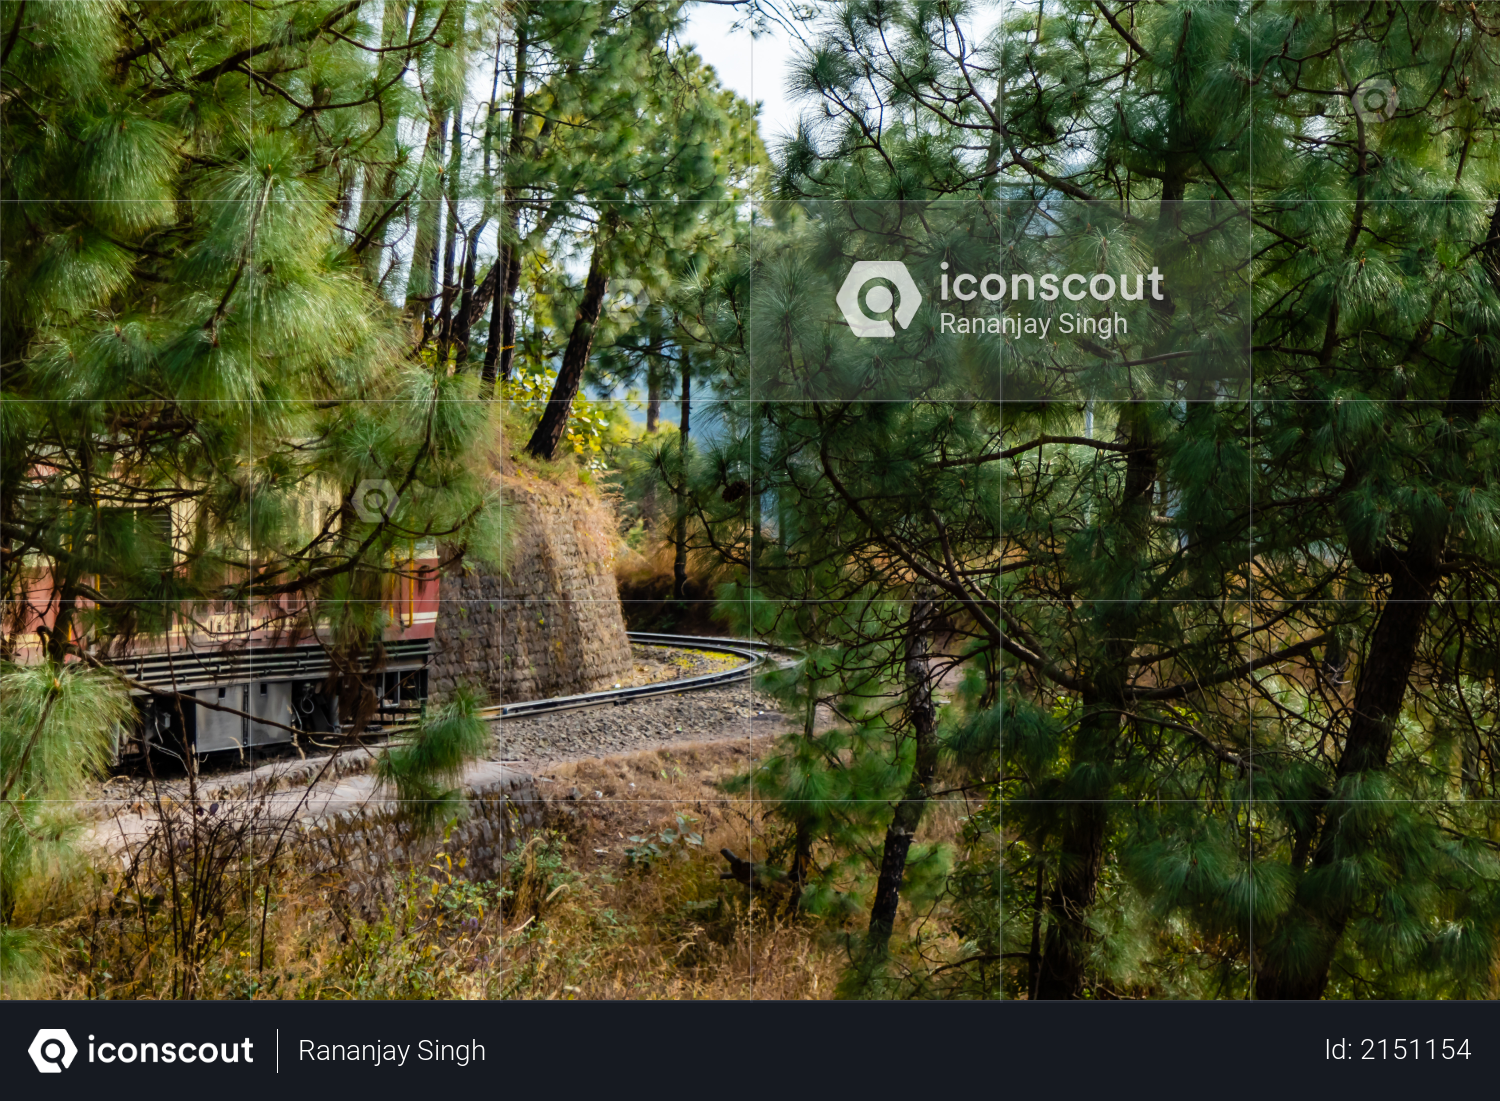 Train visible behind the trees along side mountain, travel concept Photo